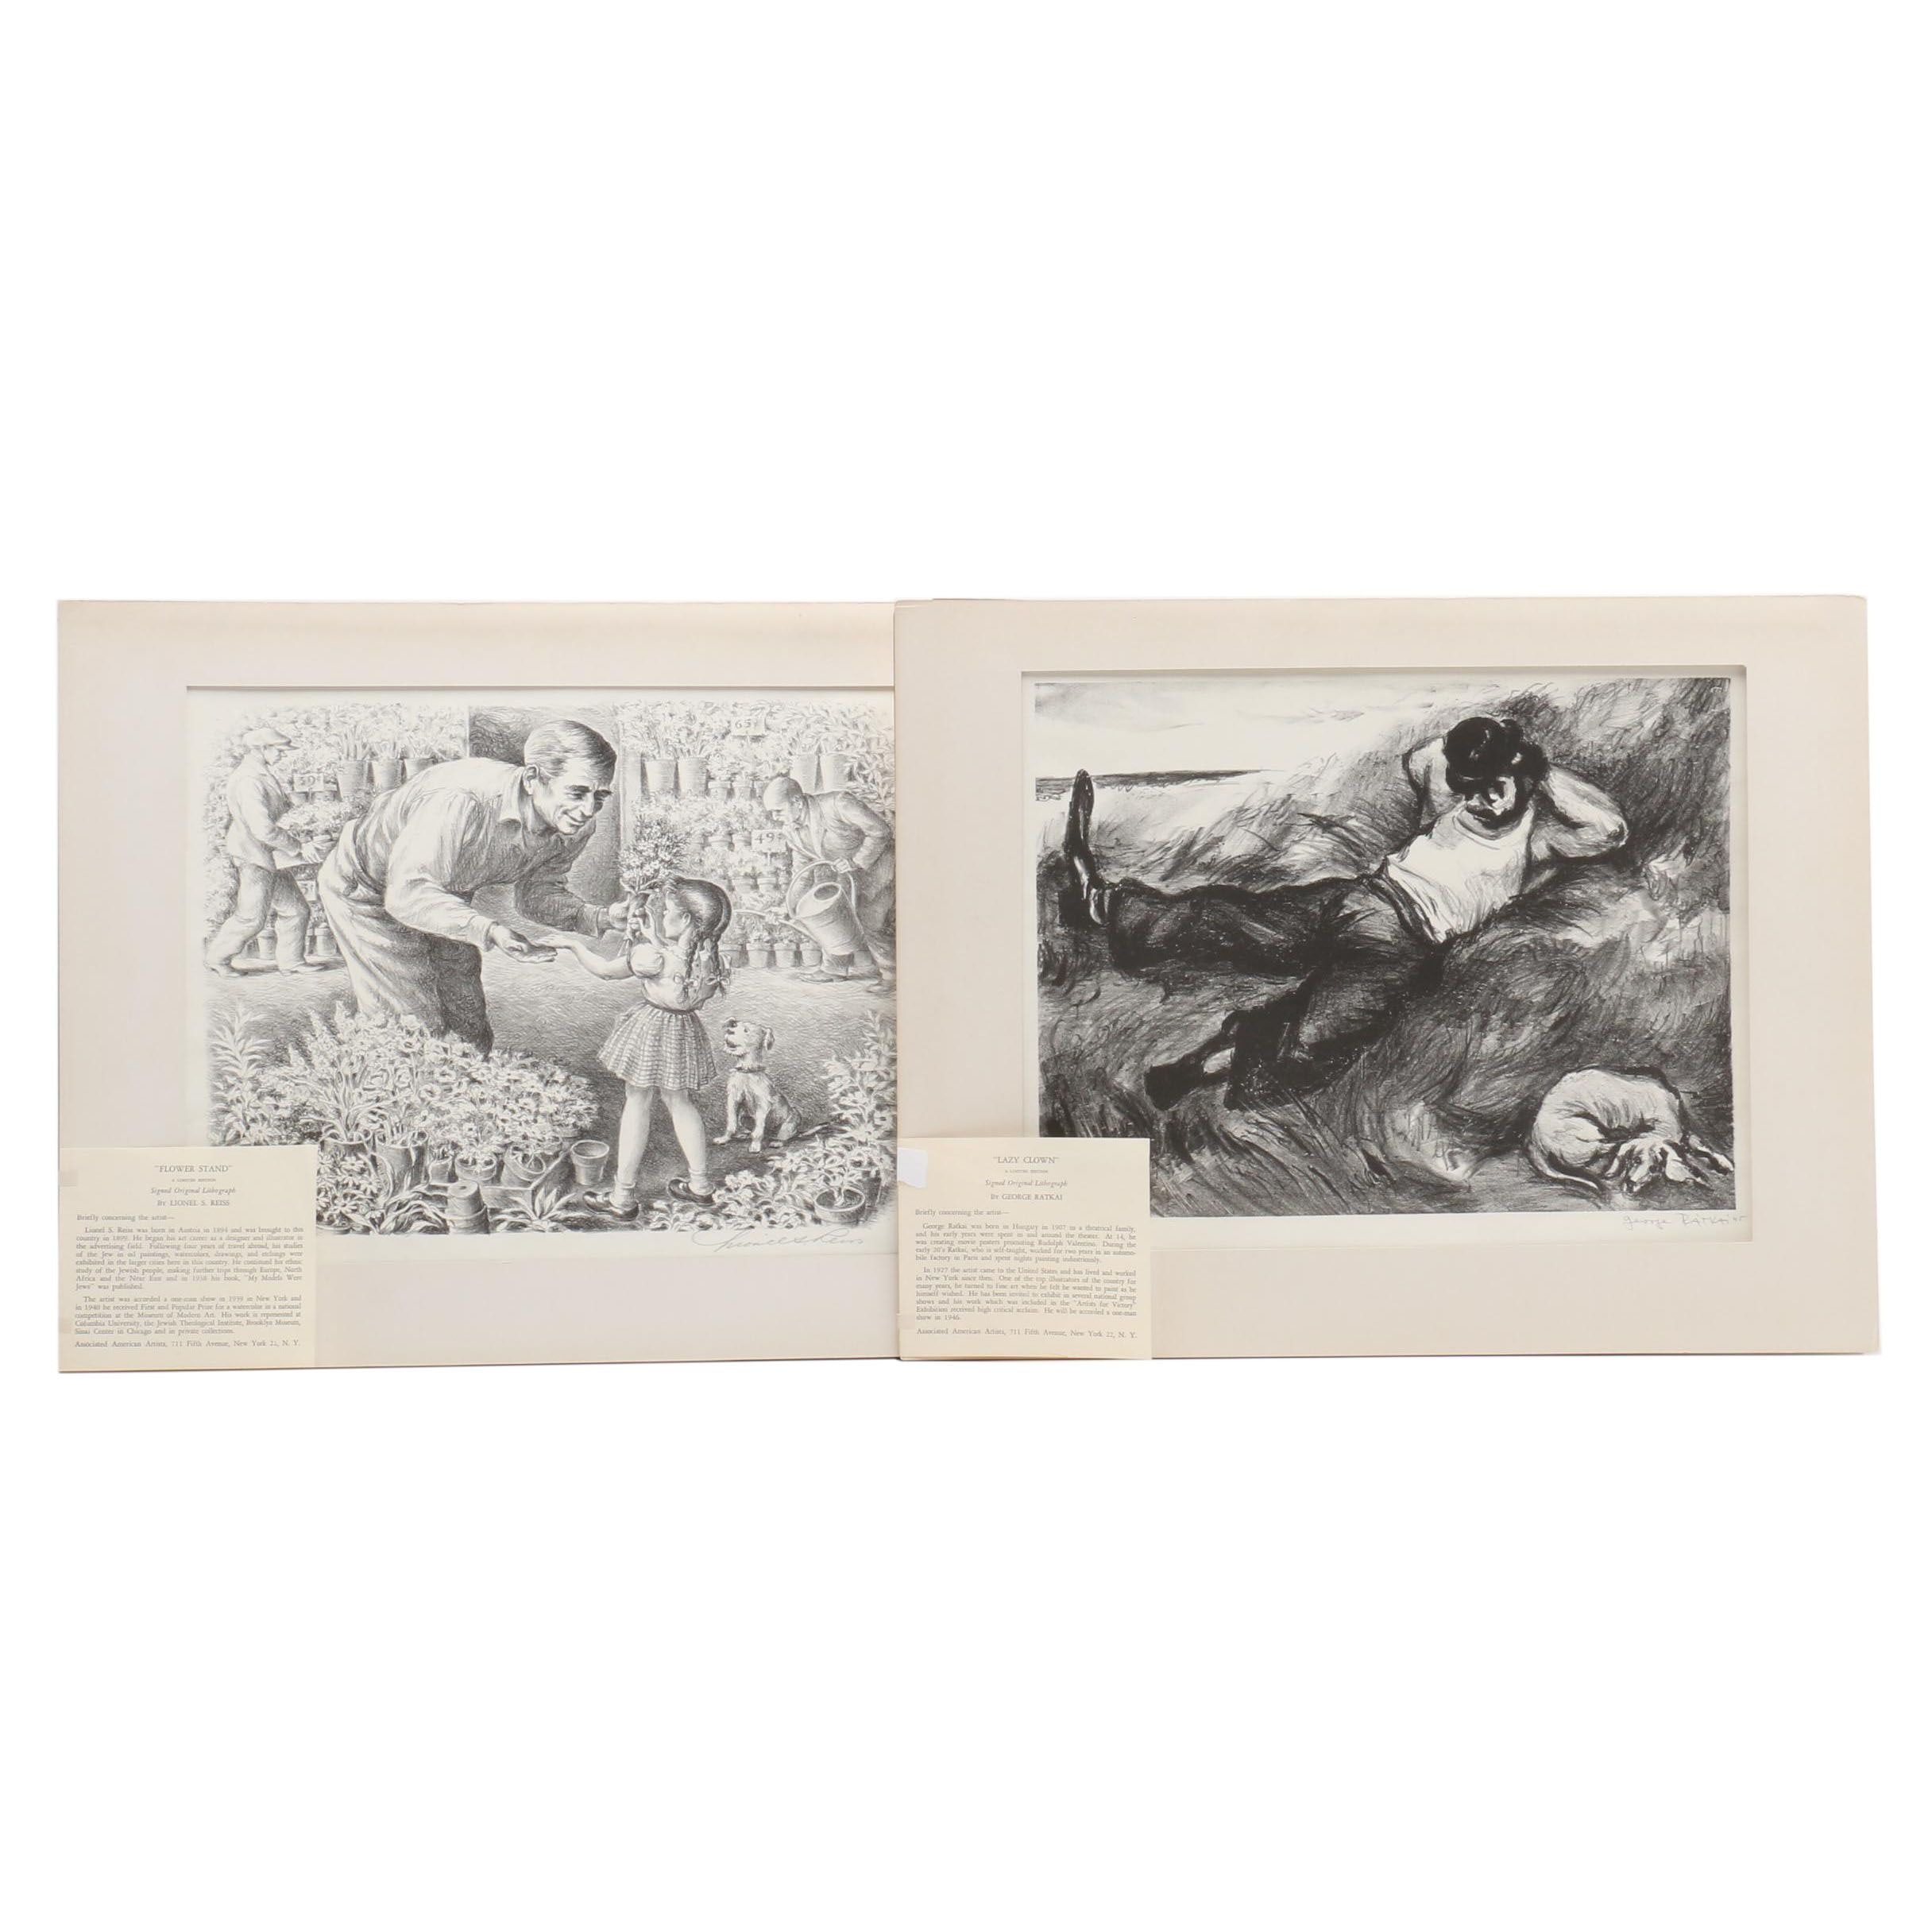 George Ratkai and Lionel Reiss 20th Century Lithographs